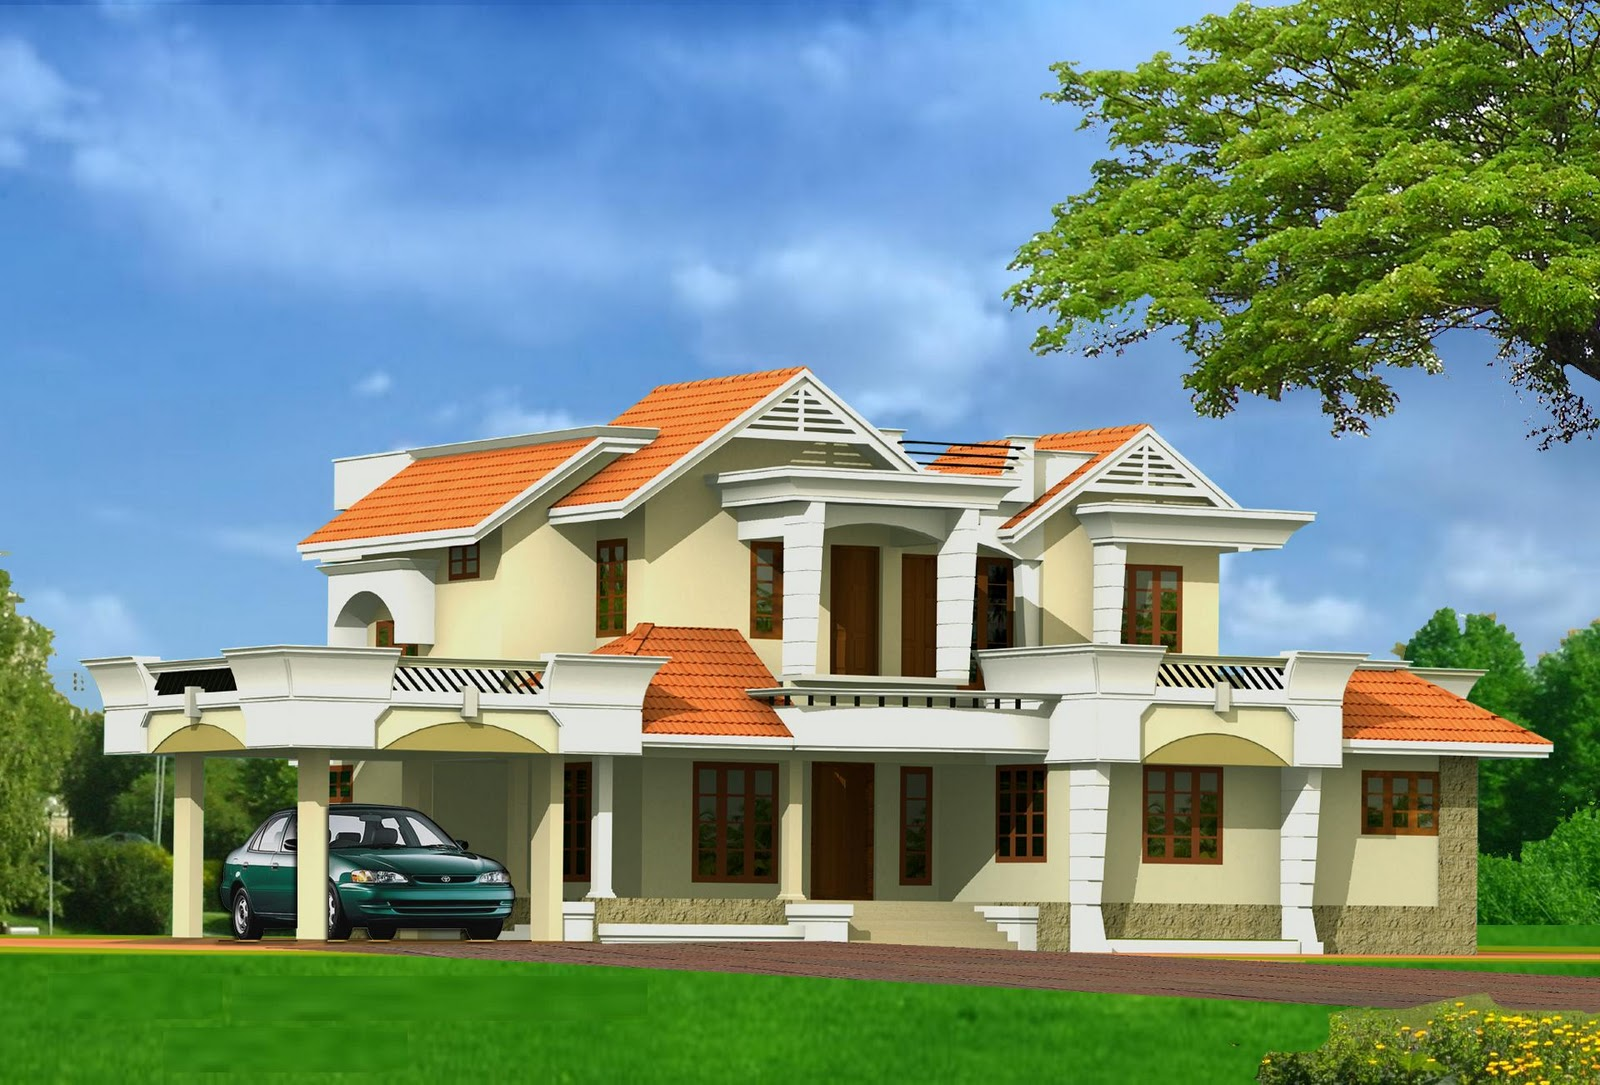 House Plans And Design Architectural Designs Of Residential Buildings